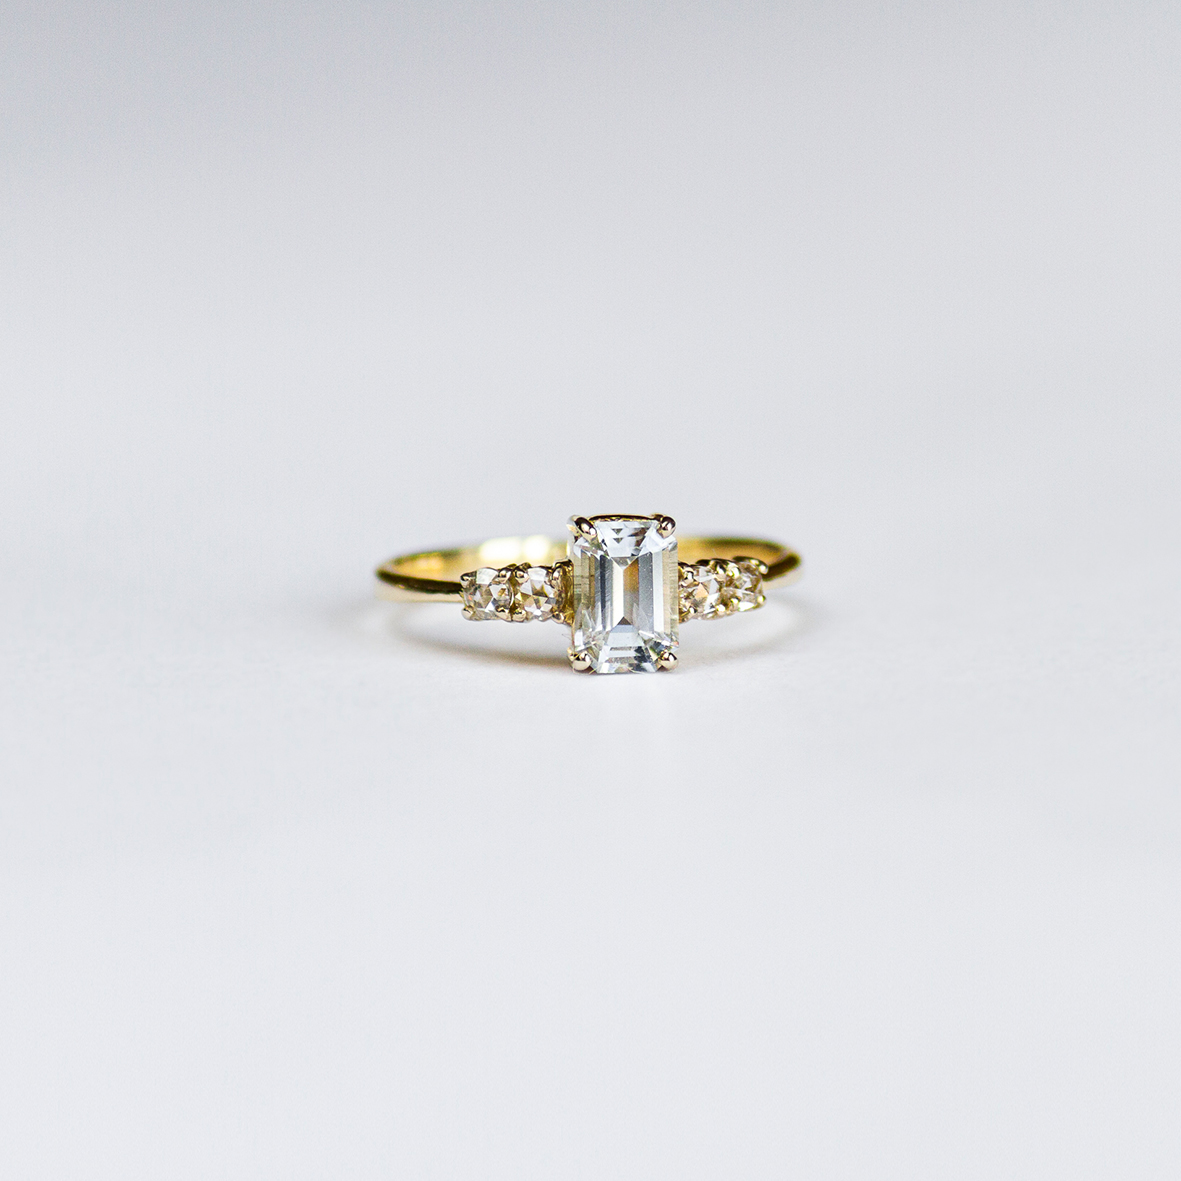 2. OONA_engagement_ficha1_single sapphire with diamonds ring